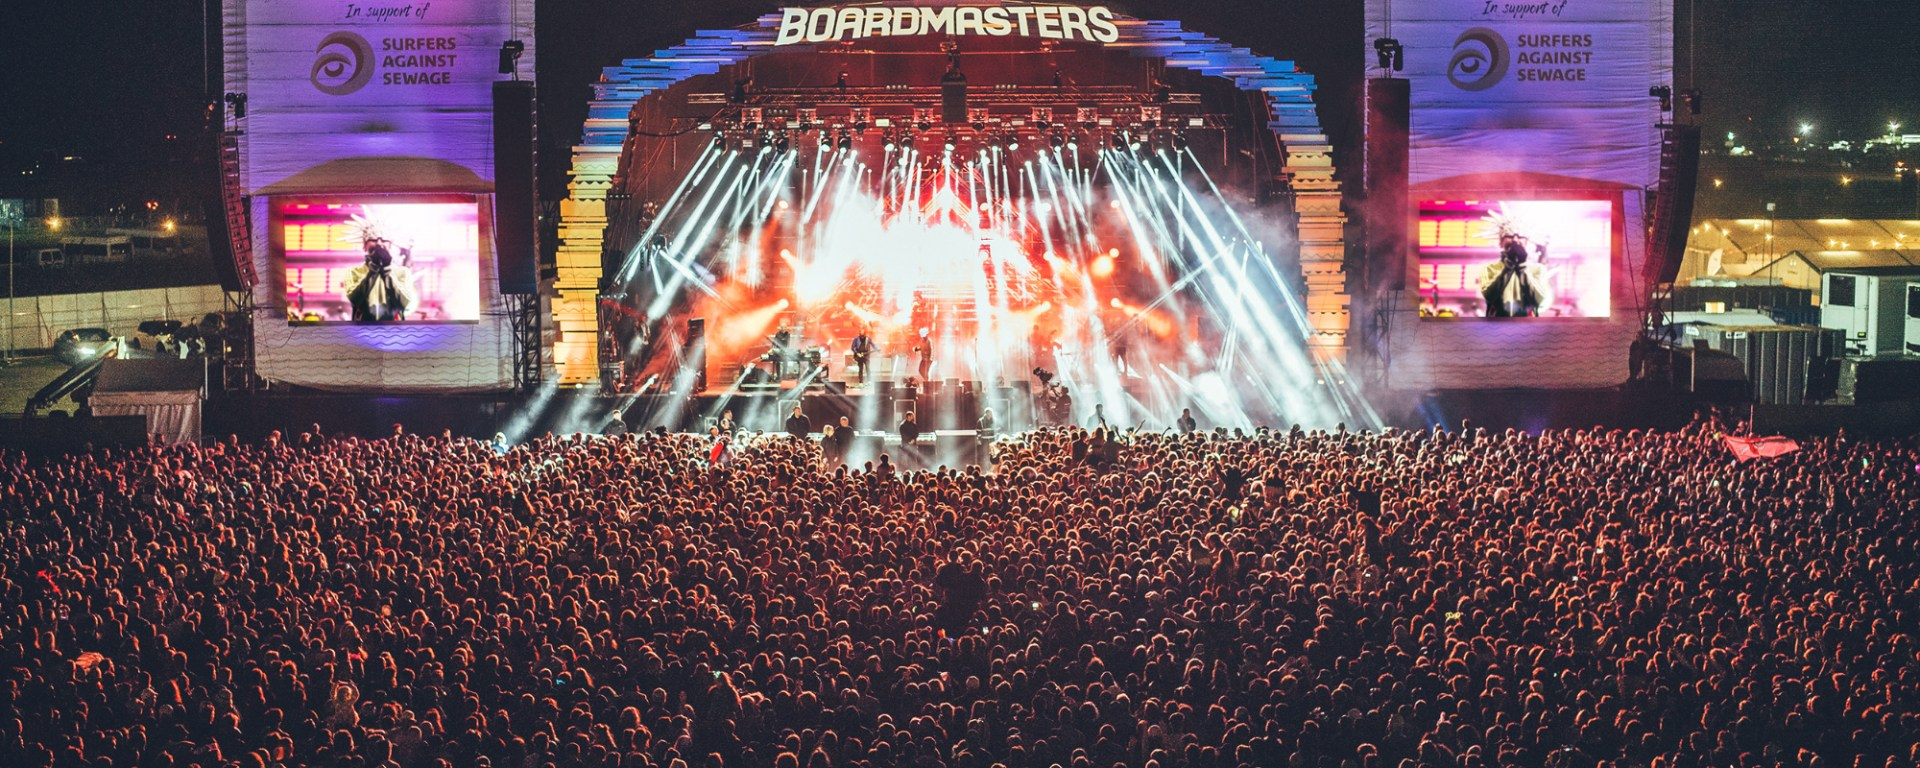 , Rudimental (dj set)  joining wu-tang clan, florence + the machine,  foals and more at Boardmasters 2019